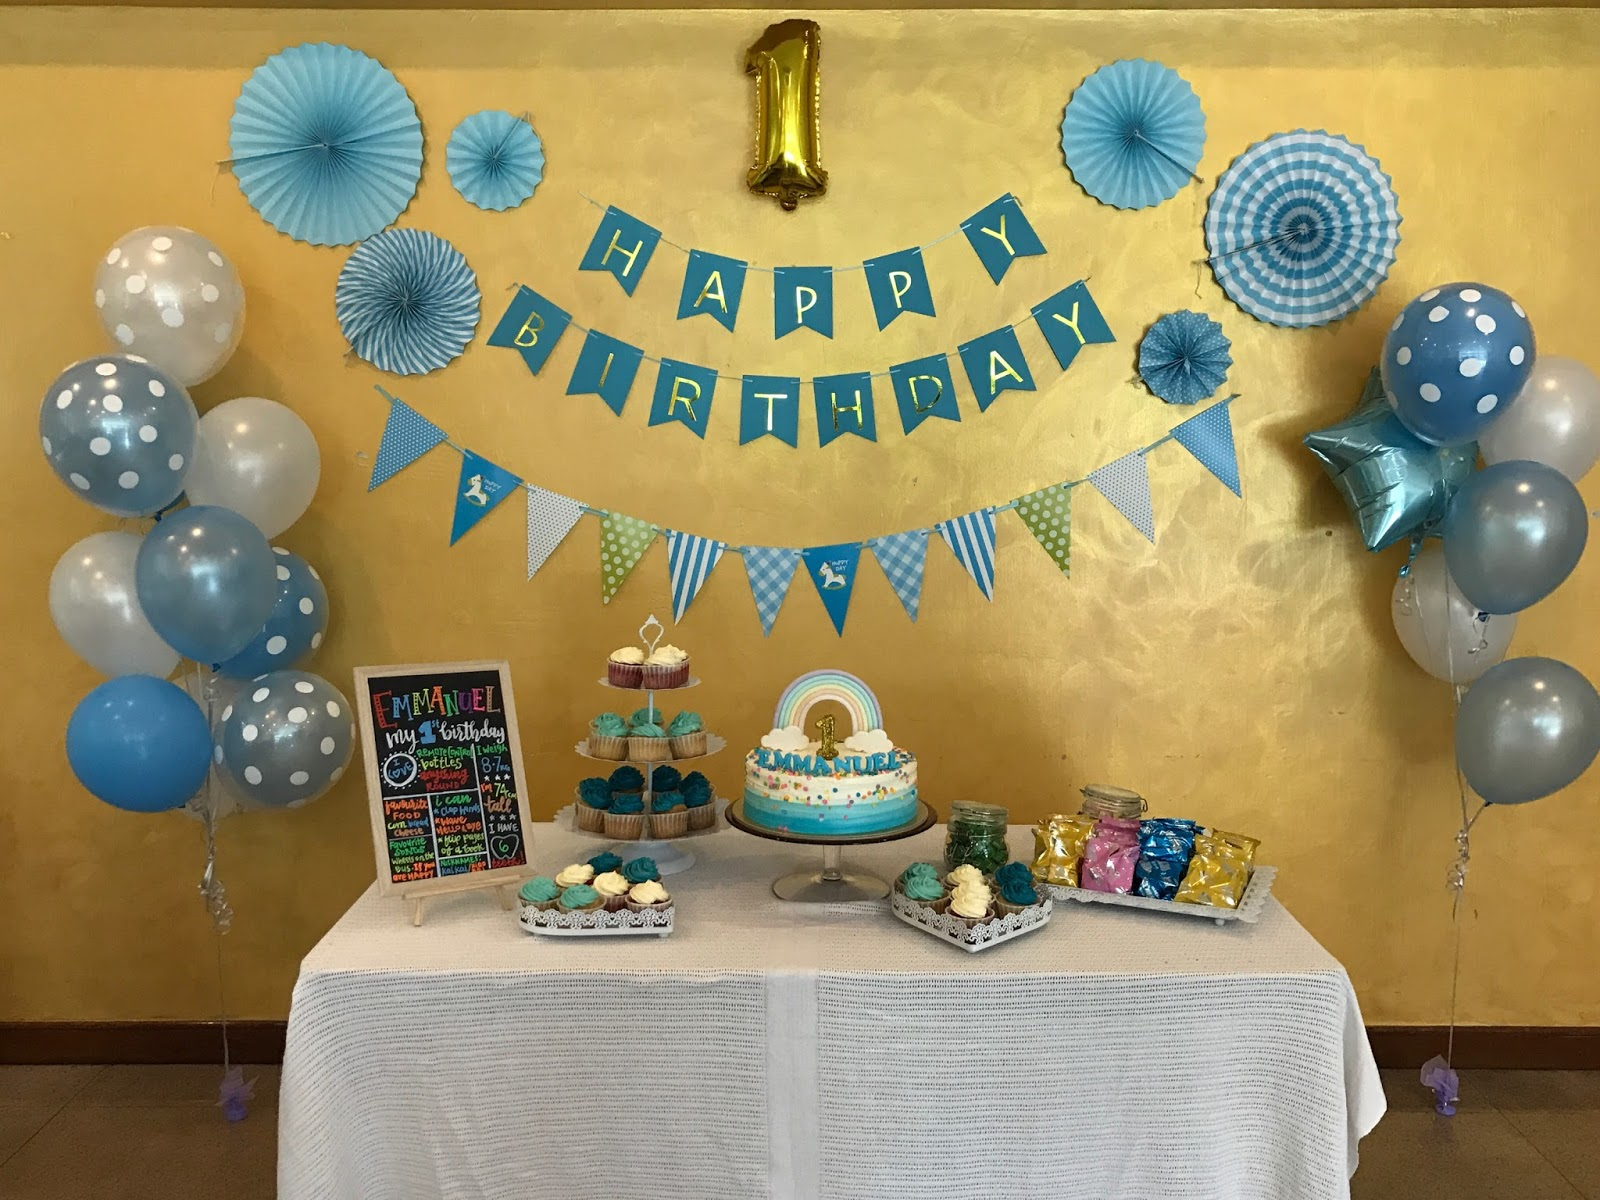 So It Was An Honor To Bake For My College Friends Baby Emmanuel 1st Birthday Party A Pastel Blue Theme Mummy Wanted Ombre And White